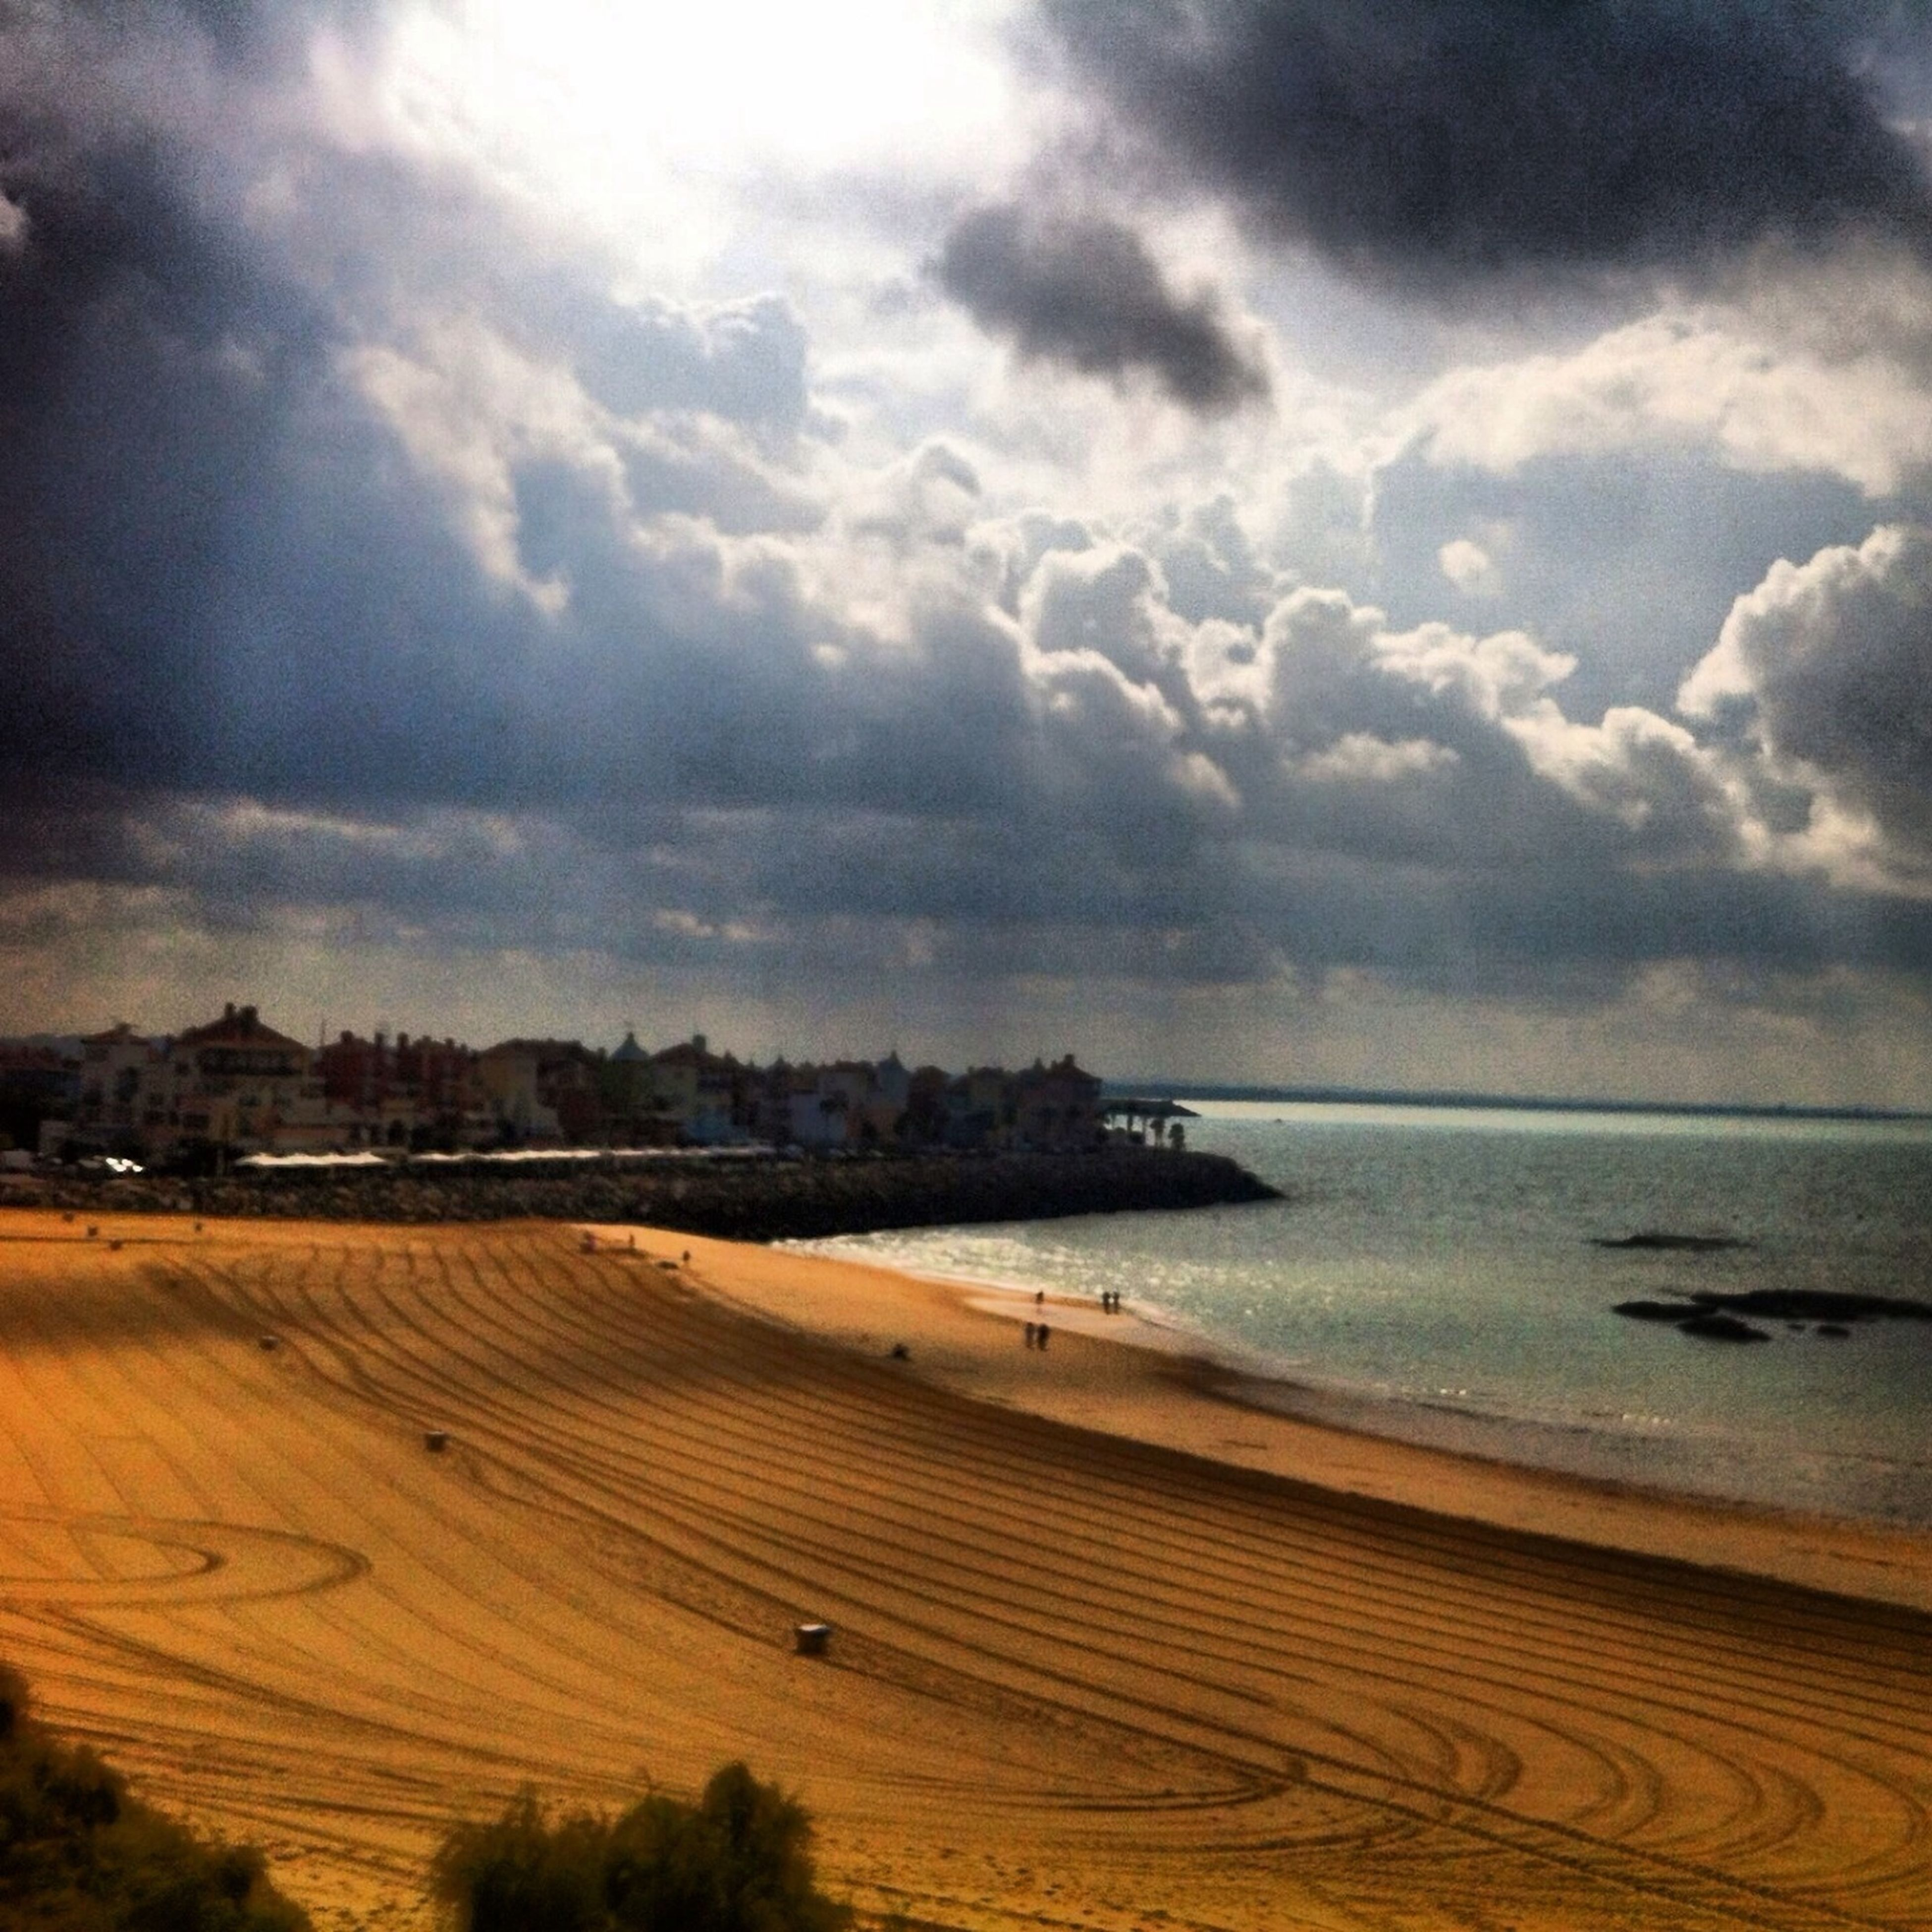 sea, beach, water, sky, horizon over water, shore, sand, tranquil scene, scenics, tranquility, beauty in nature, cloud - sky, nature, cloudy, coastline, idyllic, cloud, calm, outdoors, remote